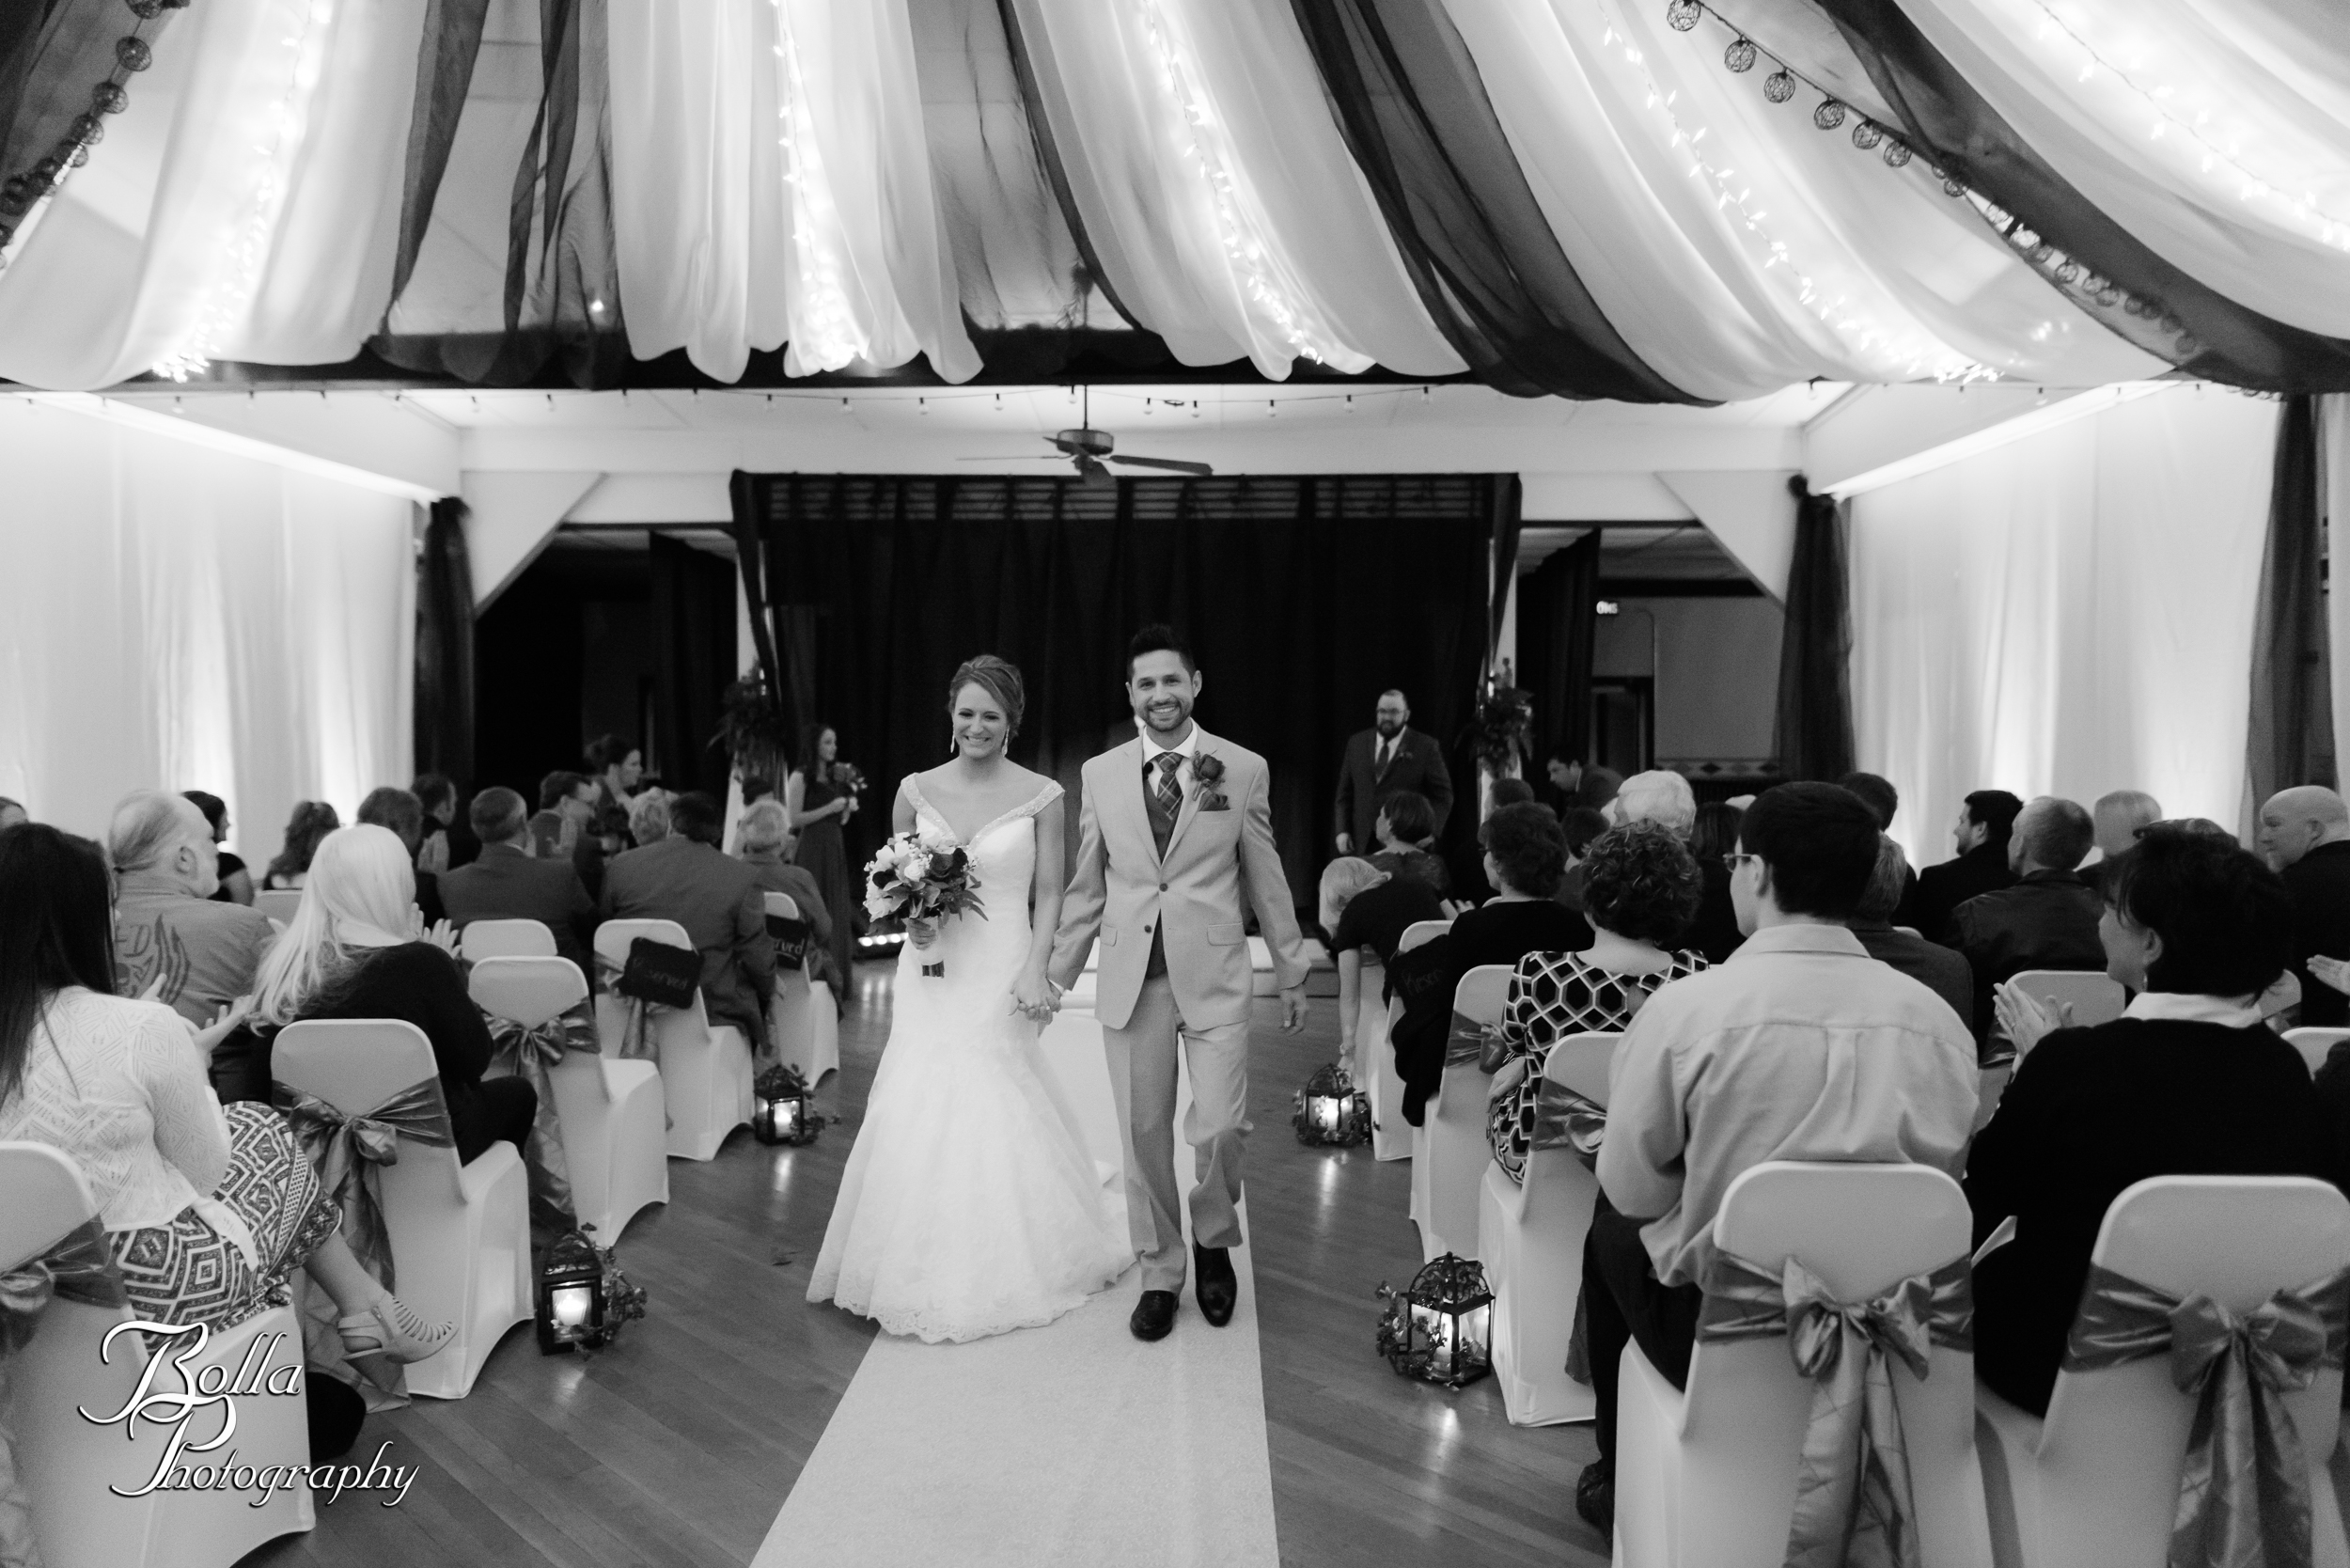 Bolla_photography_edwardsville_wedding_photographer_st_louis_weddings_highland_Allen_Warren_winter_red-0276.jpg